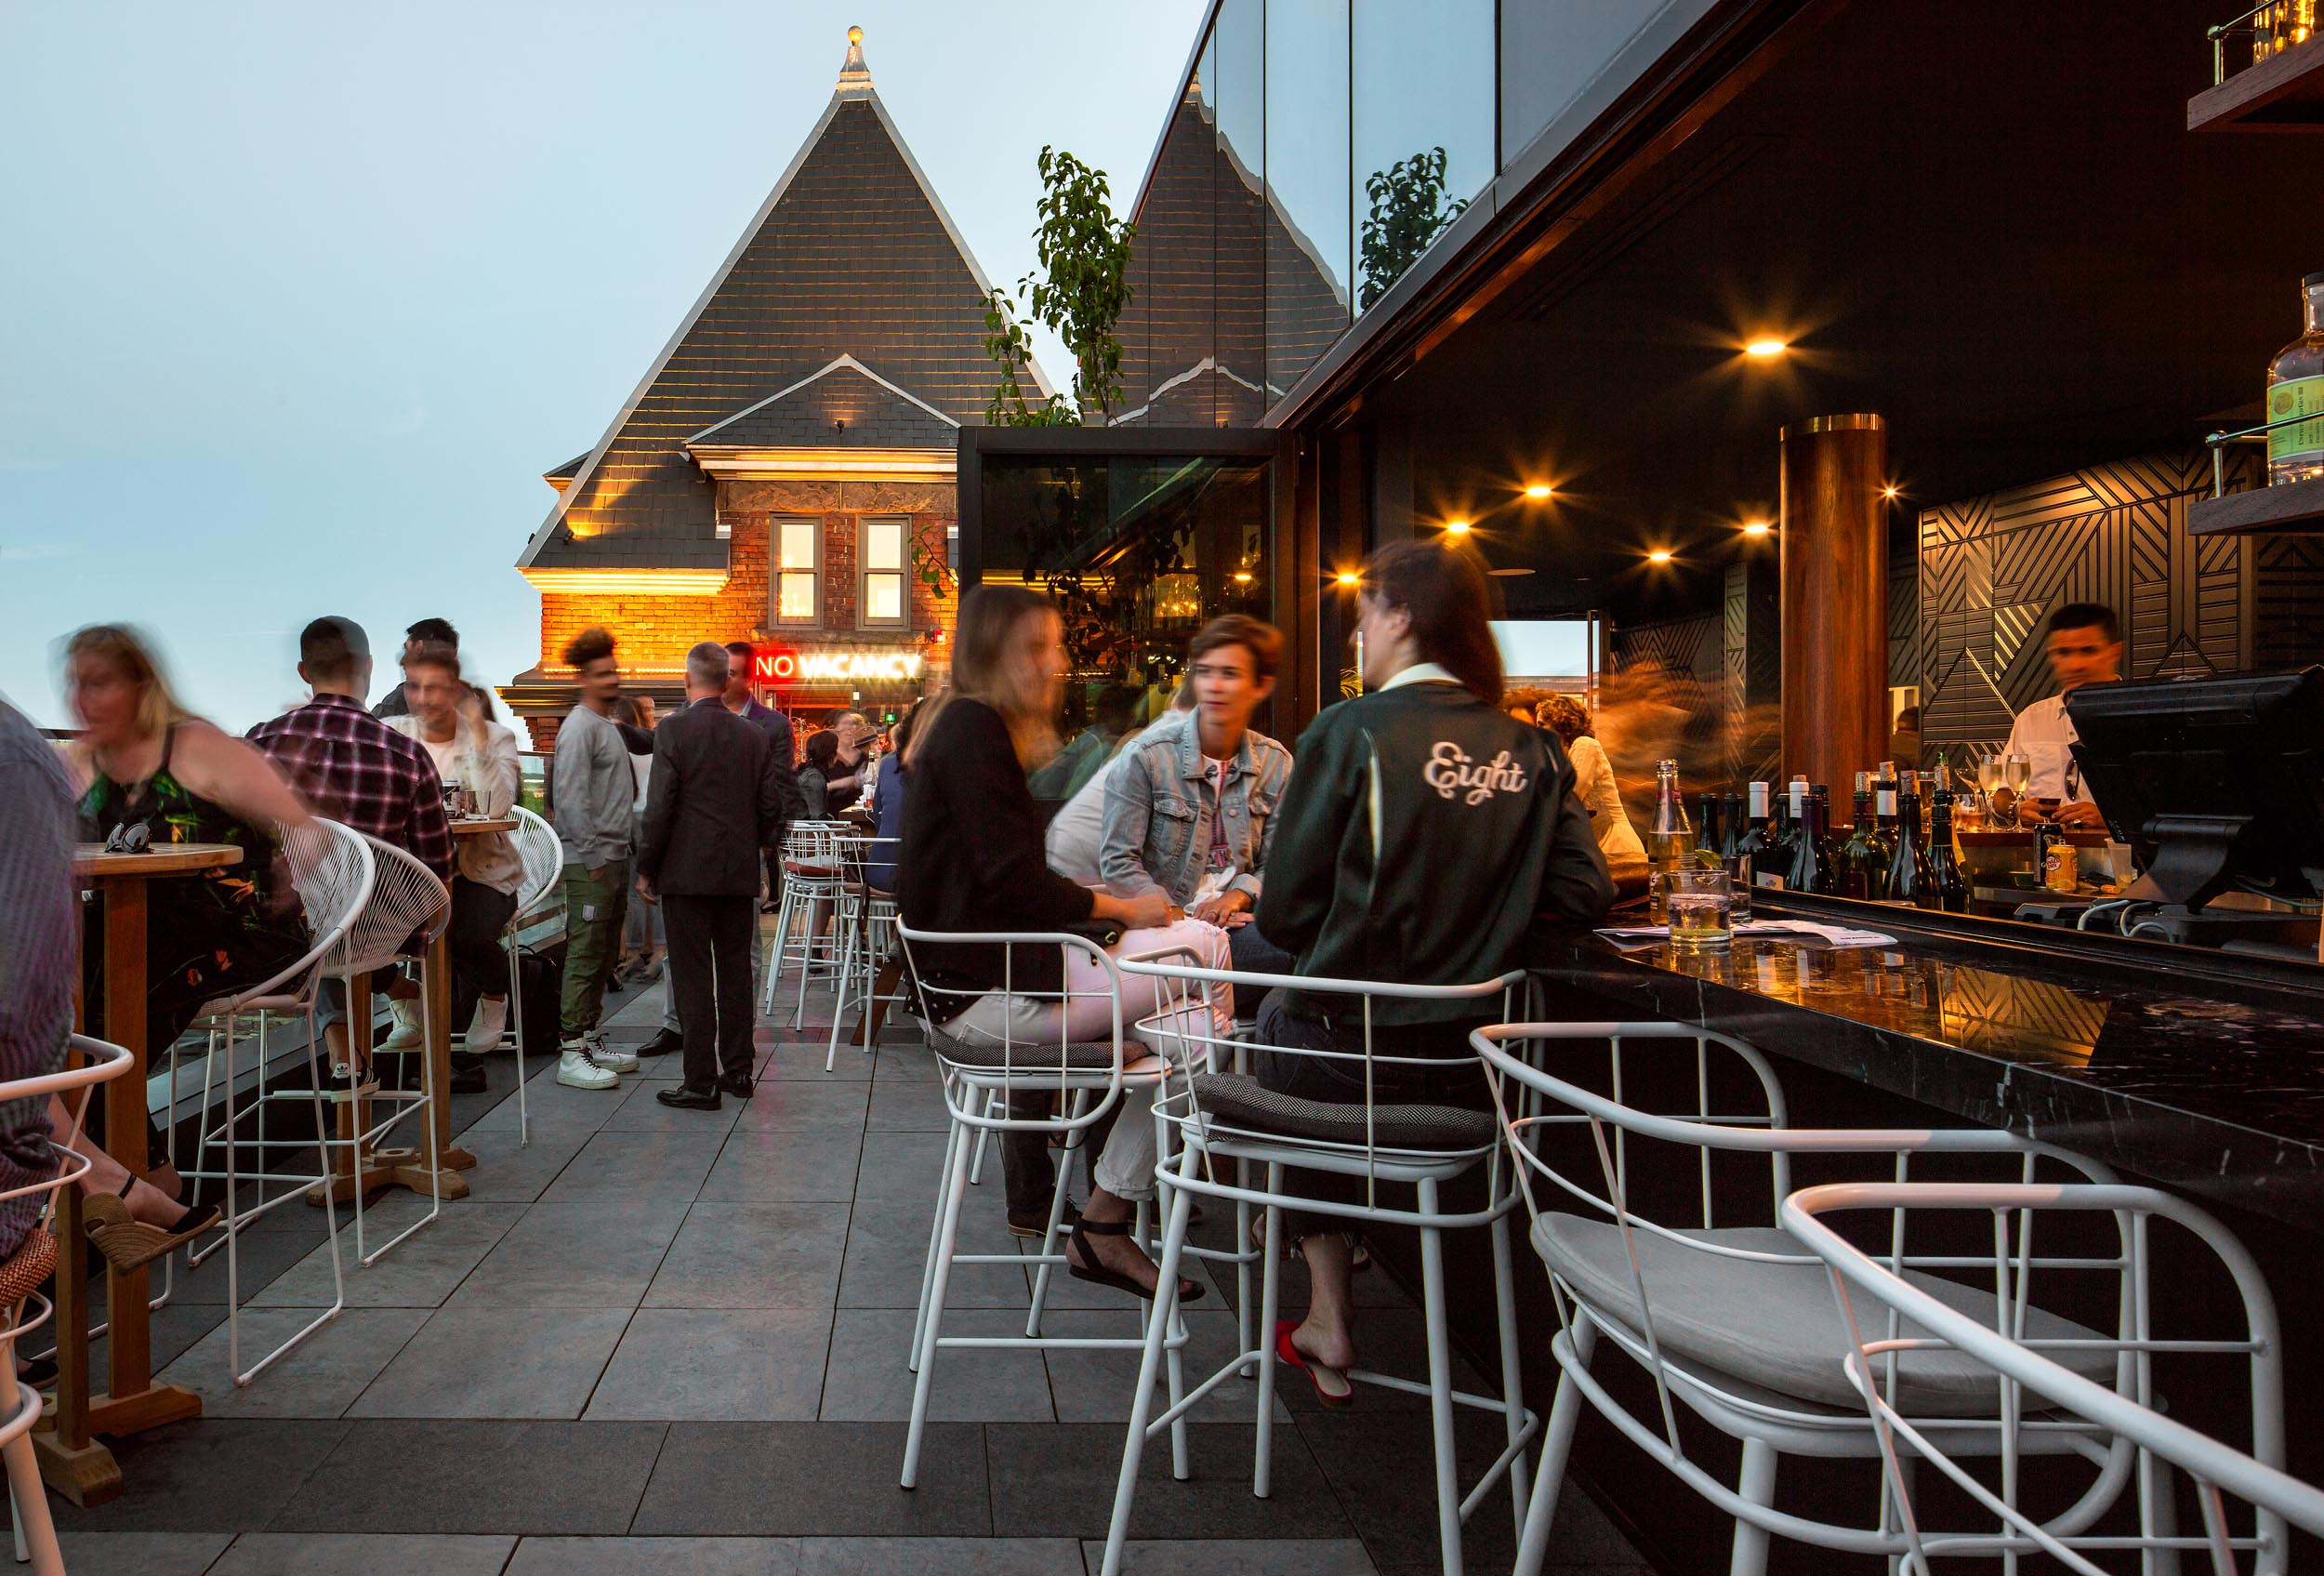 Broadview Hotel Toronto Rooftop Patio Architectural Photography by Worker Bee Supply